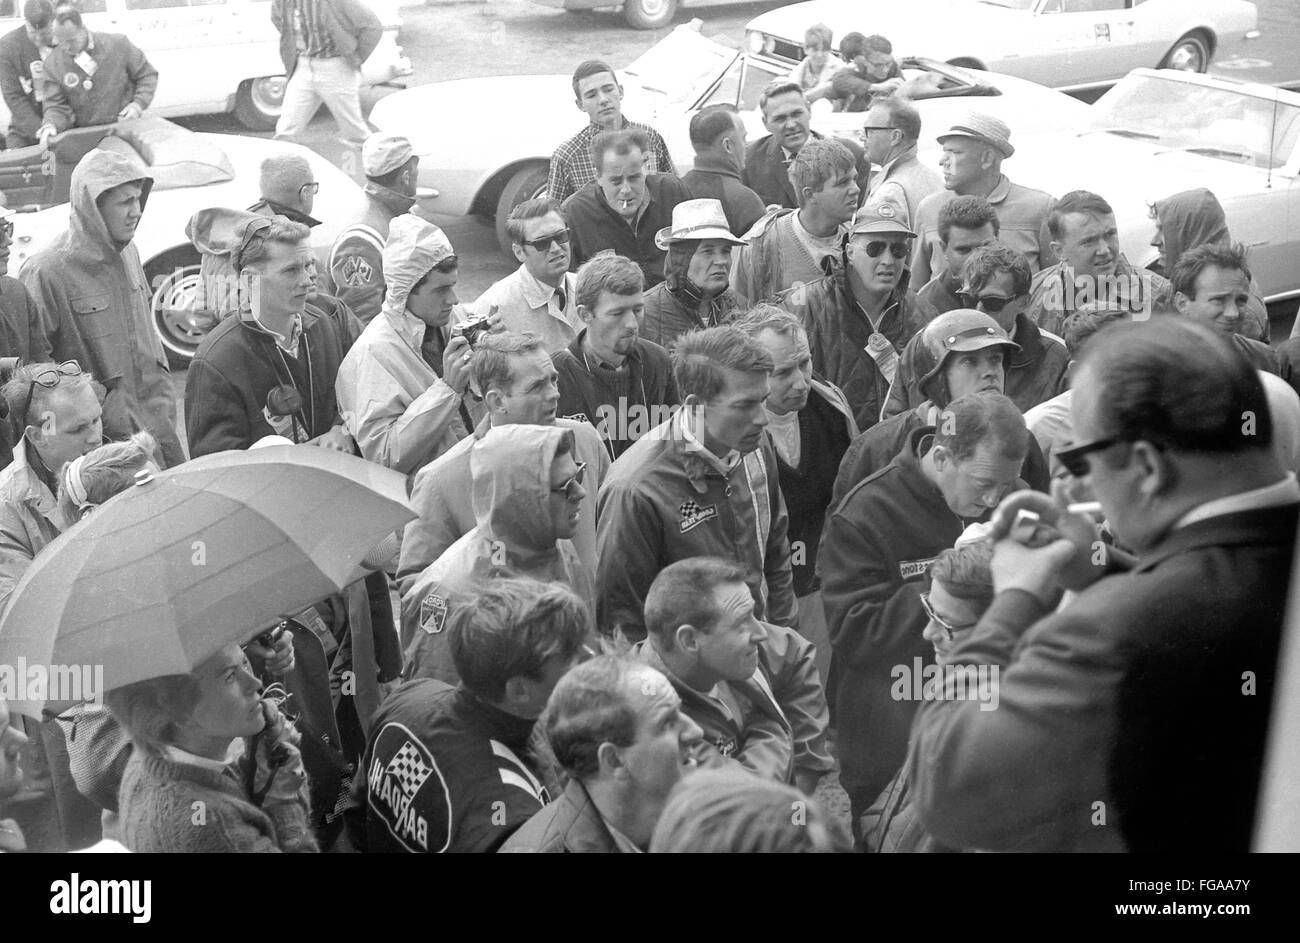 1965 Drivers Meeting at the beginning of Motorsport and formal one and Grand Prix racing in Canada at Mosport Race - Stock Image